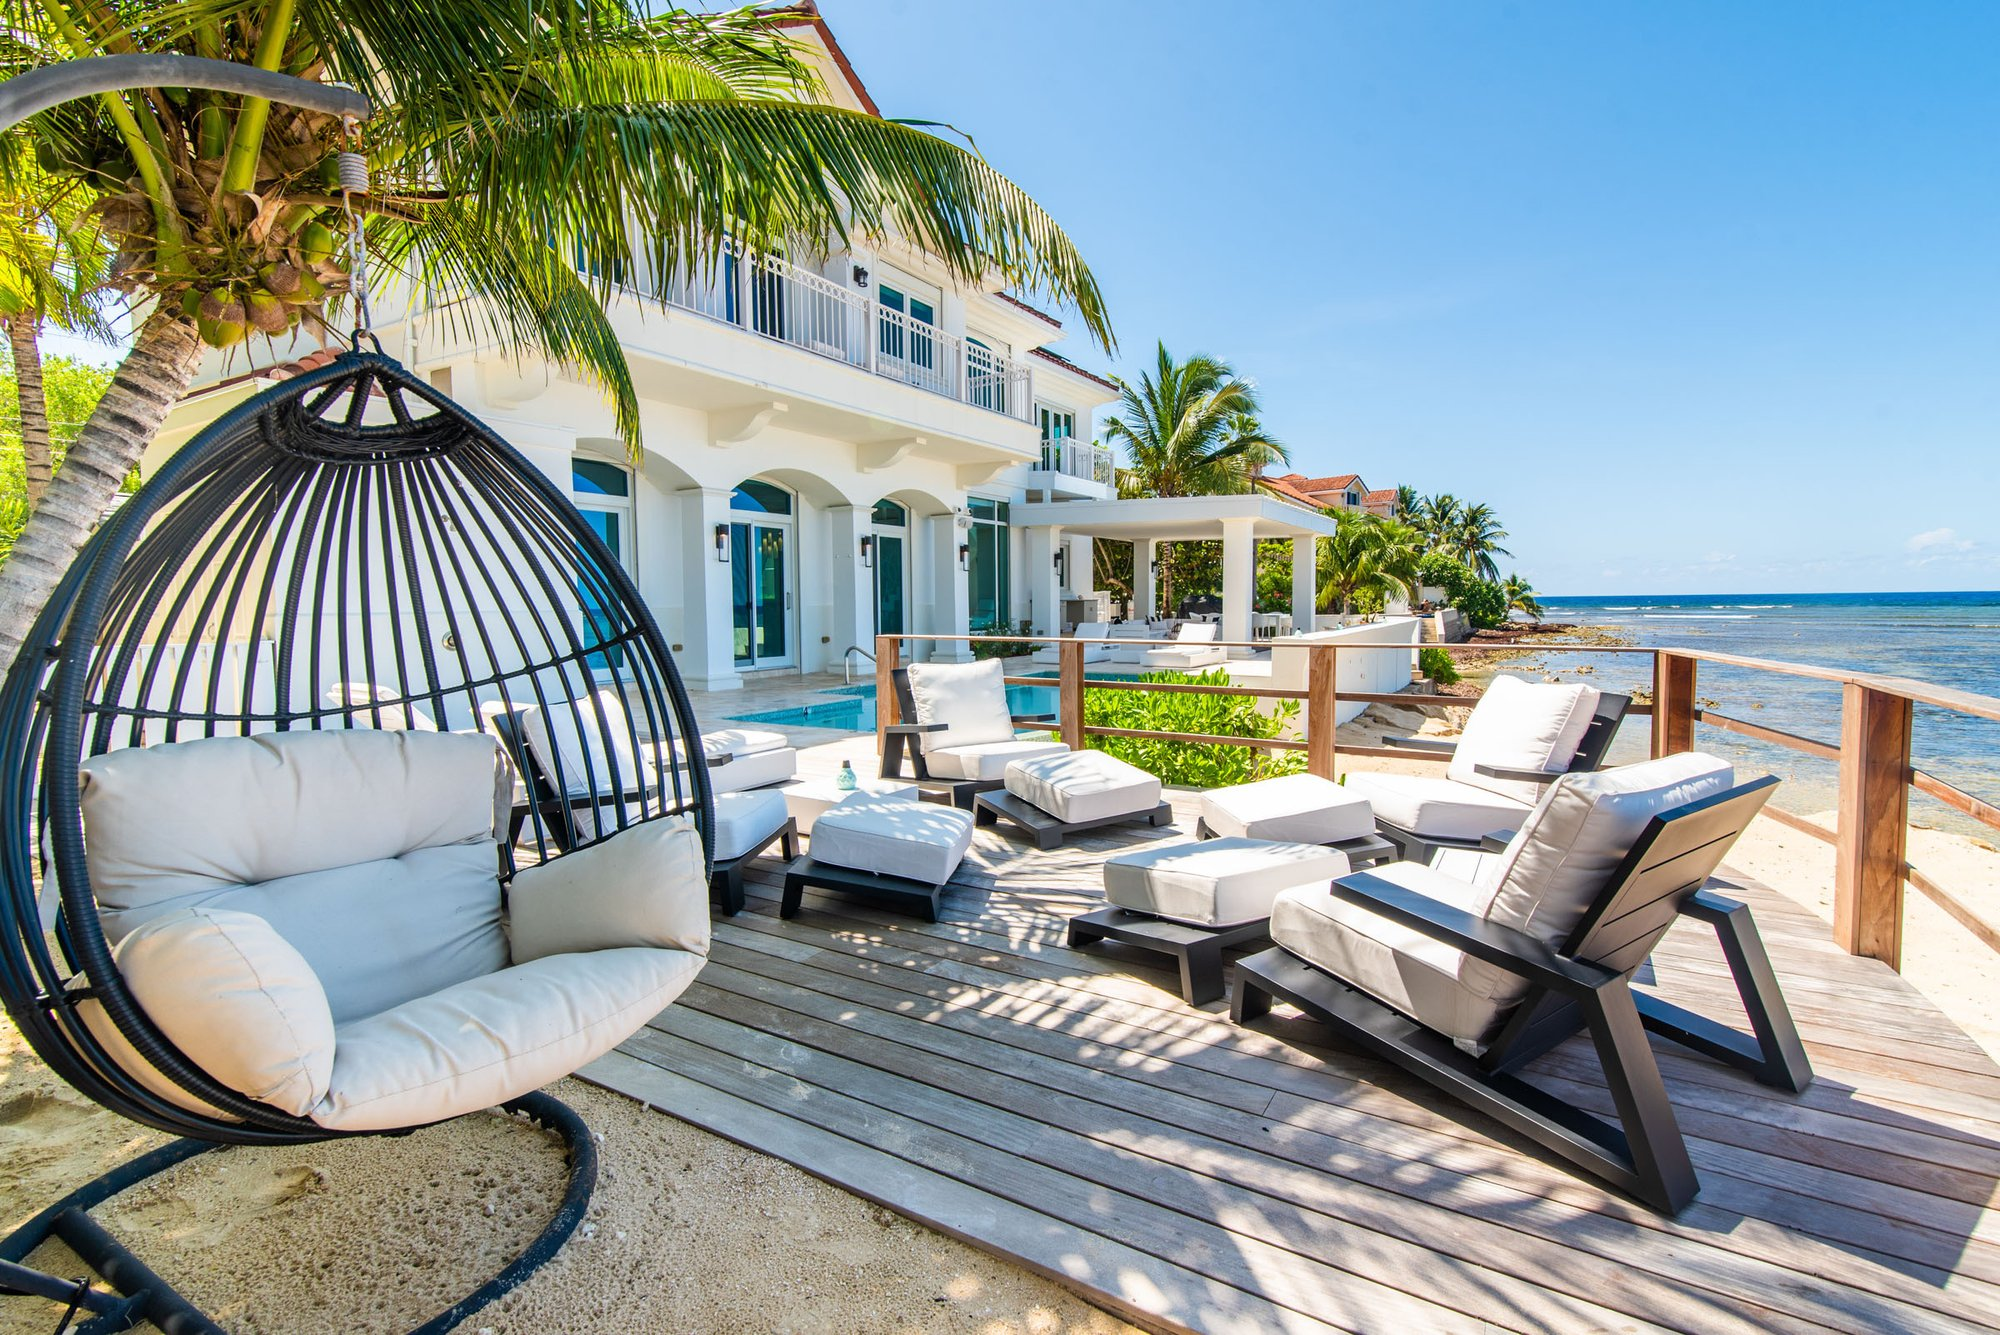 Villa in George Town, George Town, Cayman Islands 1 - 11568453